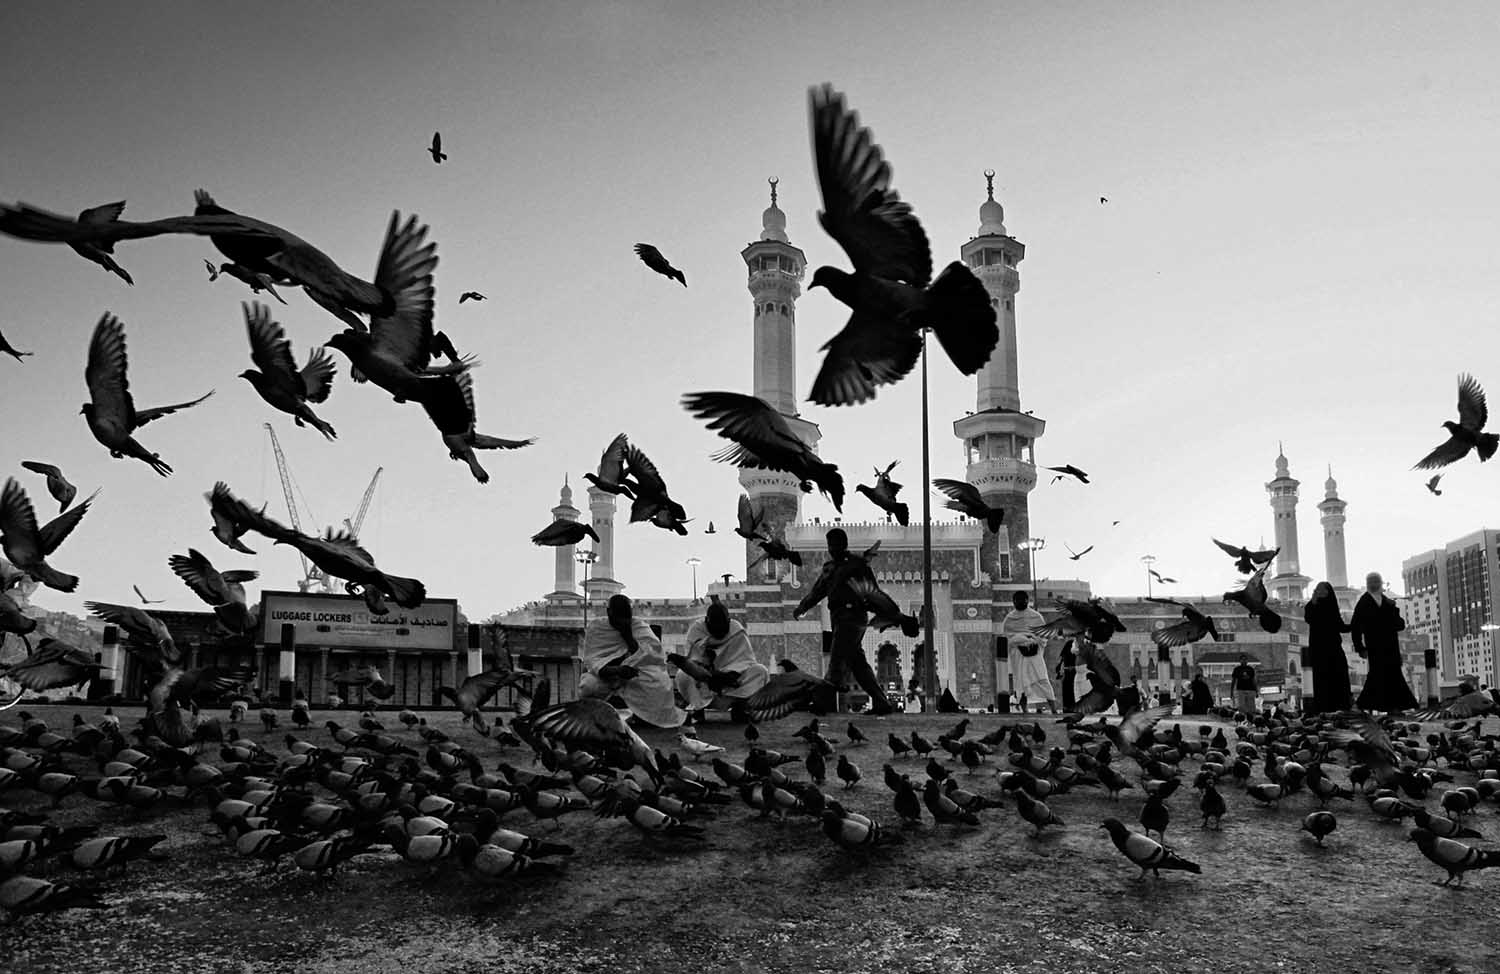 Alamsyah rauf indonesia commended open travel 2014 sony world photography awards